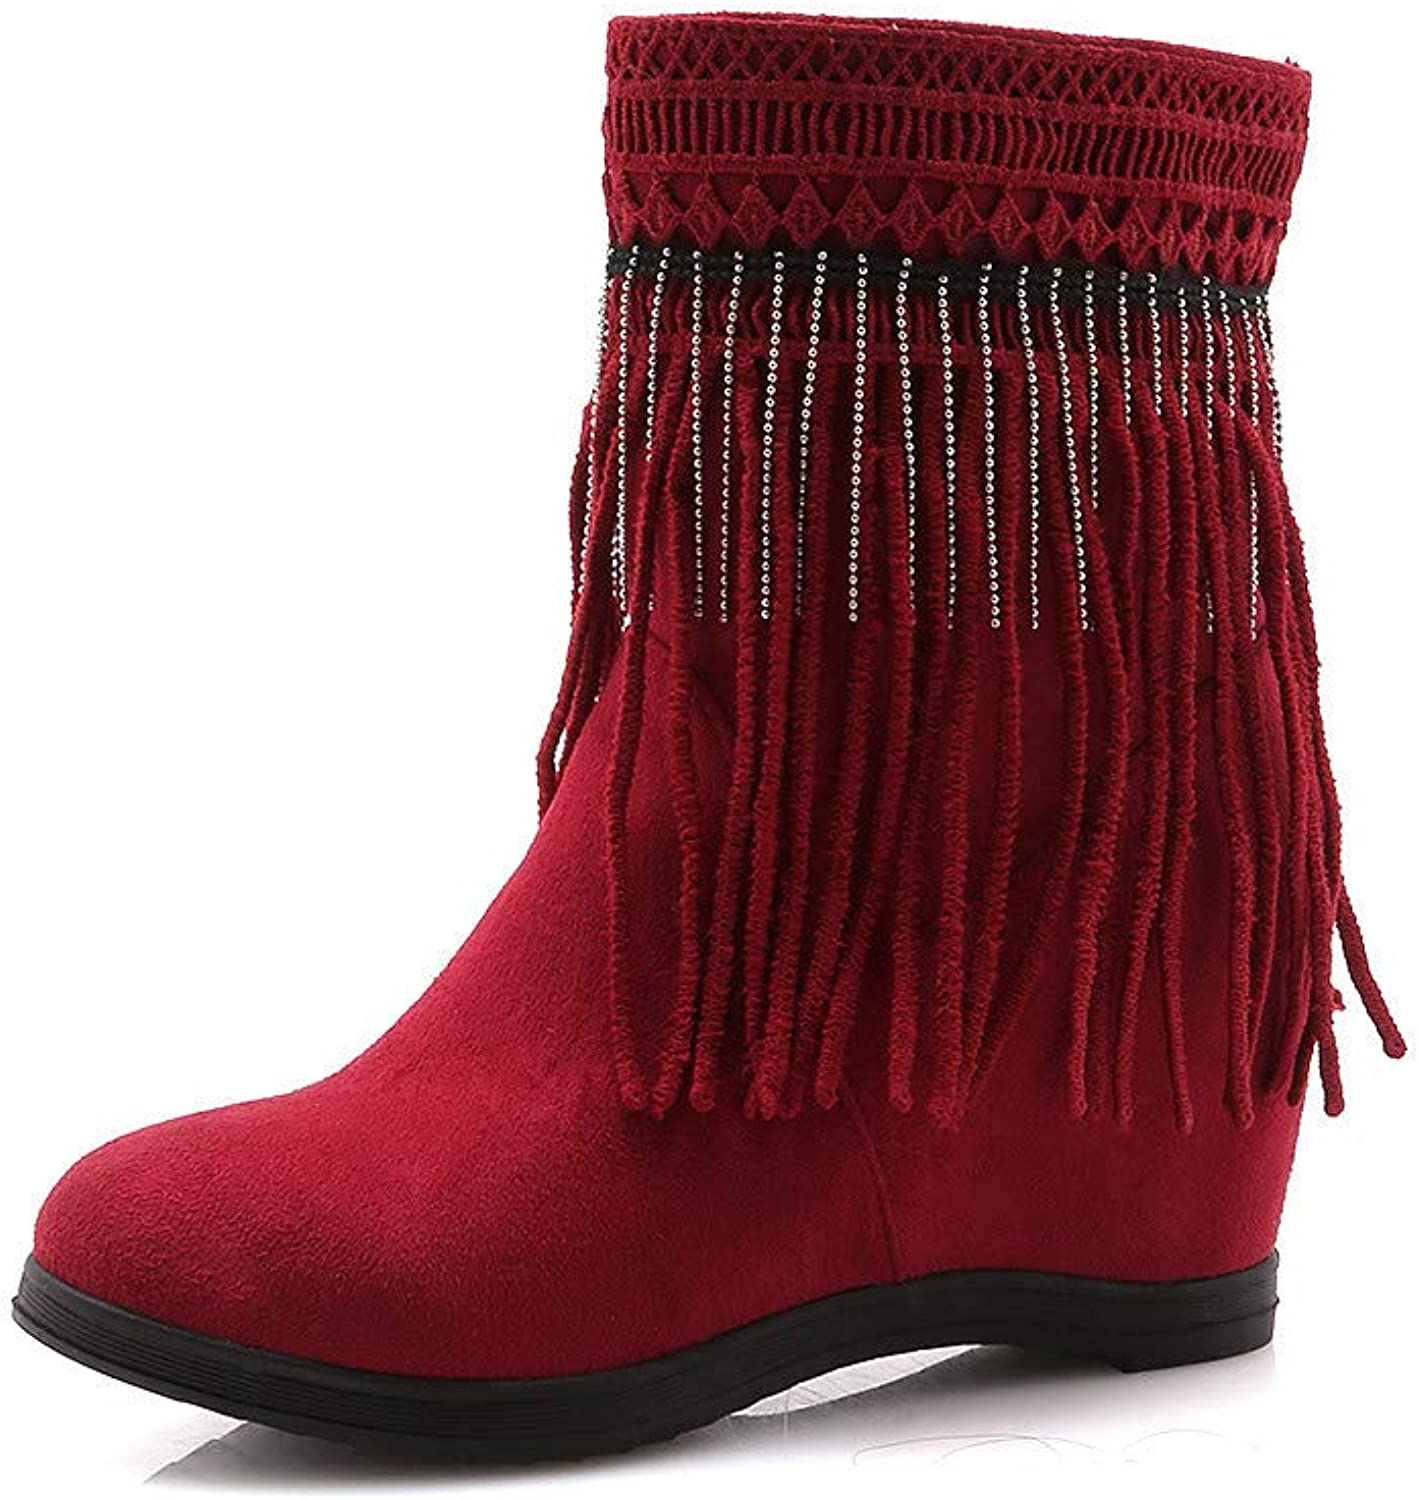 Boots for Women, Autumn and Winter Large Size Increase (6.5Cm) Warm Snow Boots, Fringed Matte Flat Boots and Bare Boots